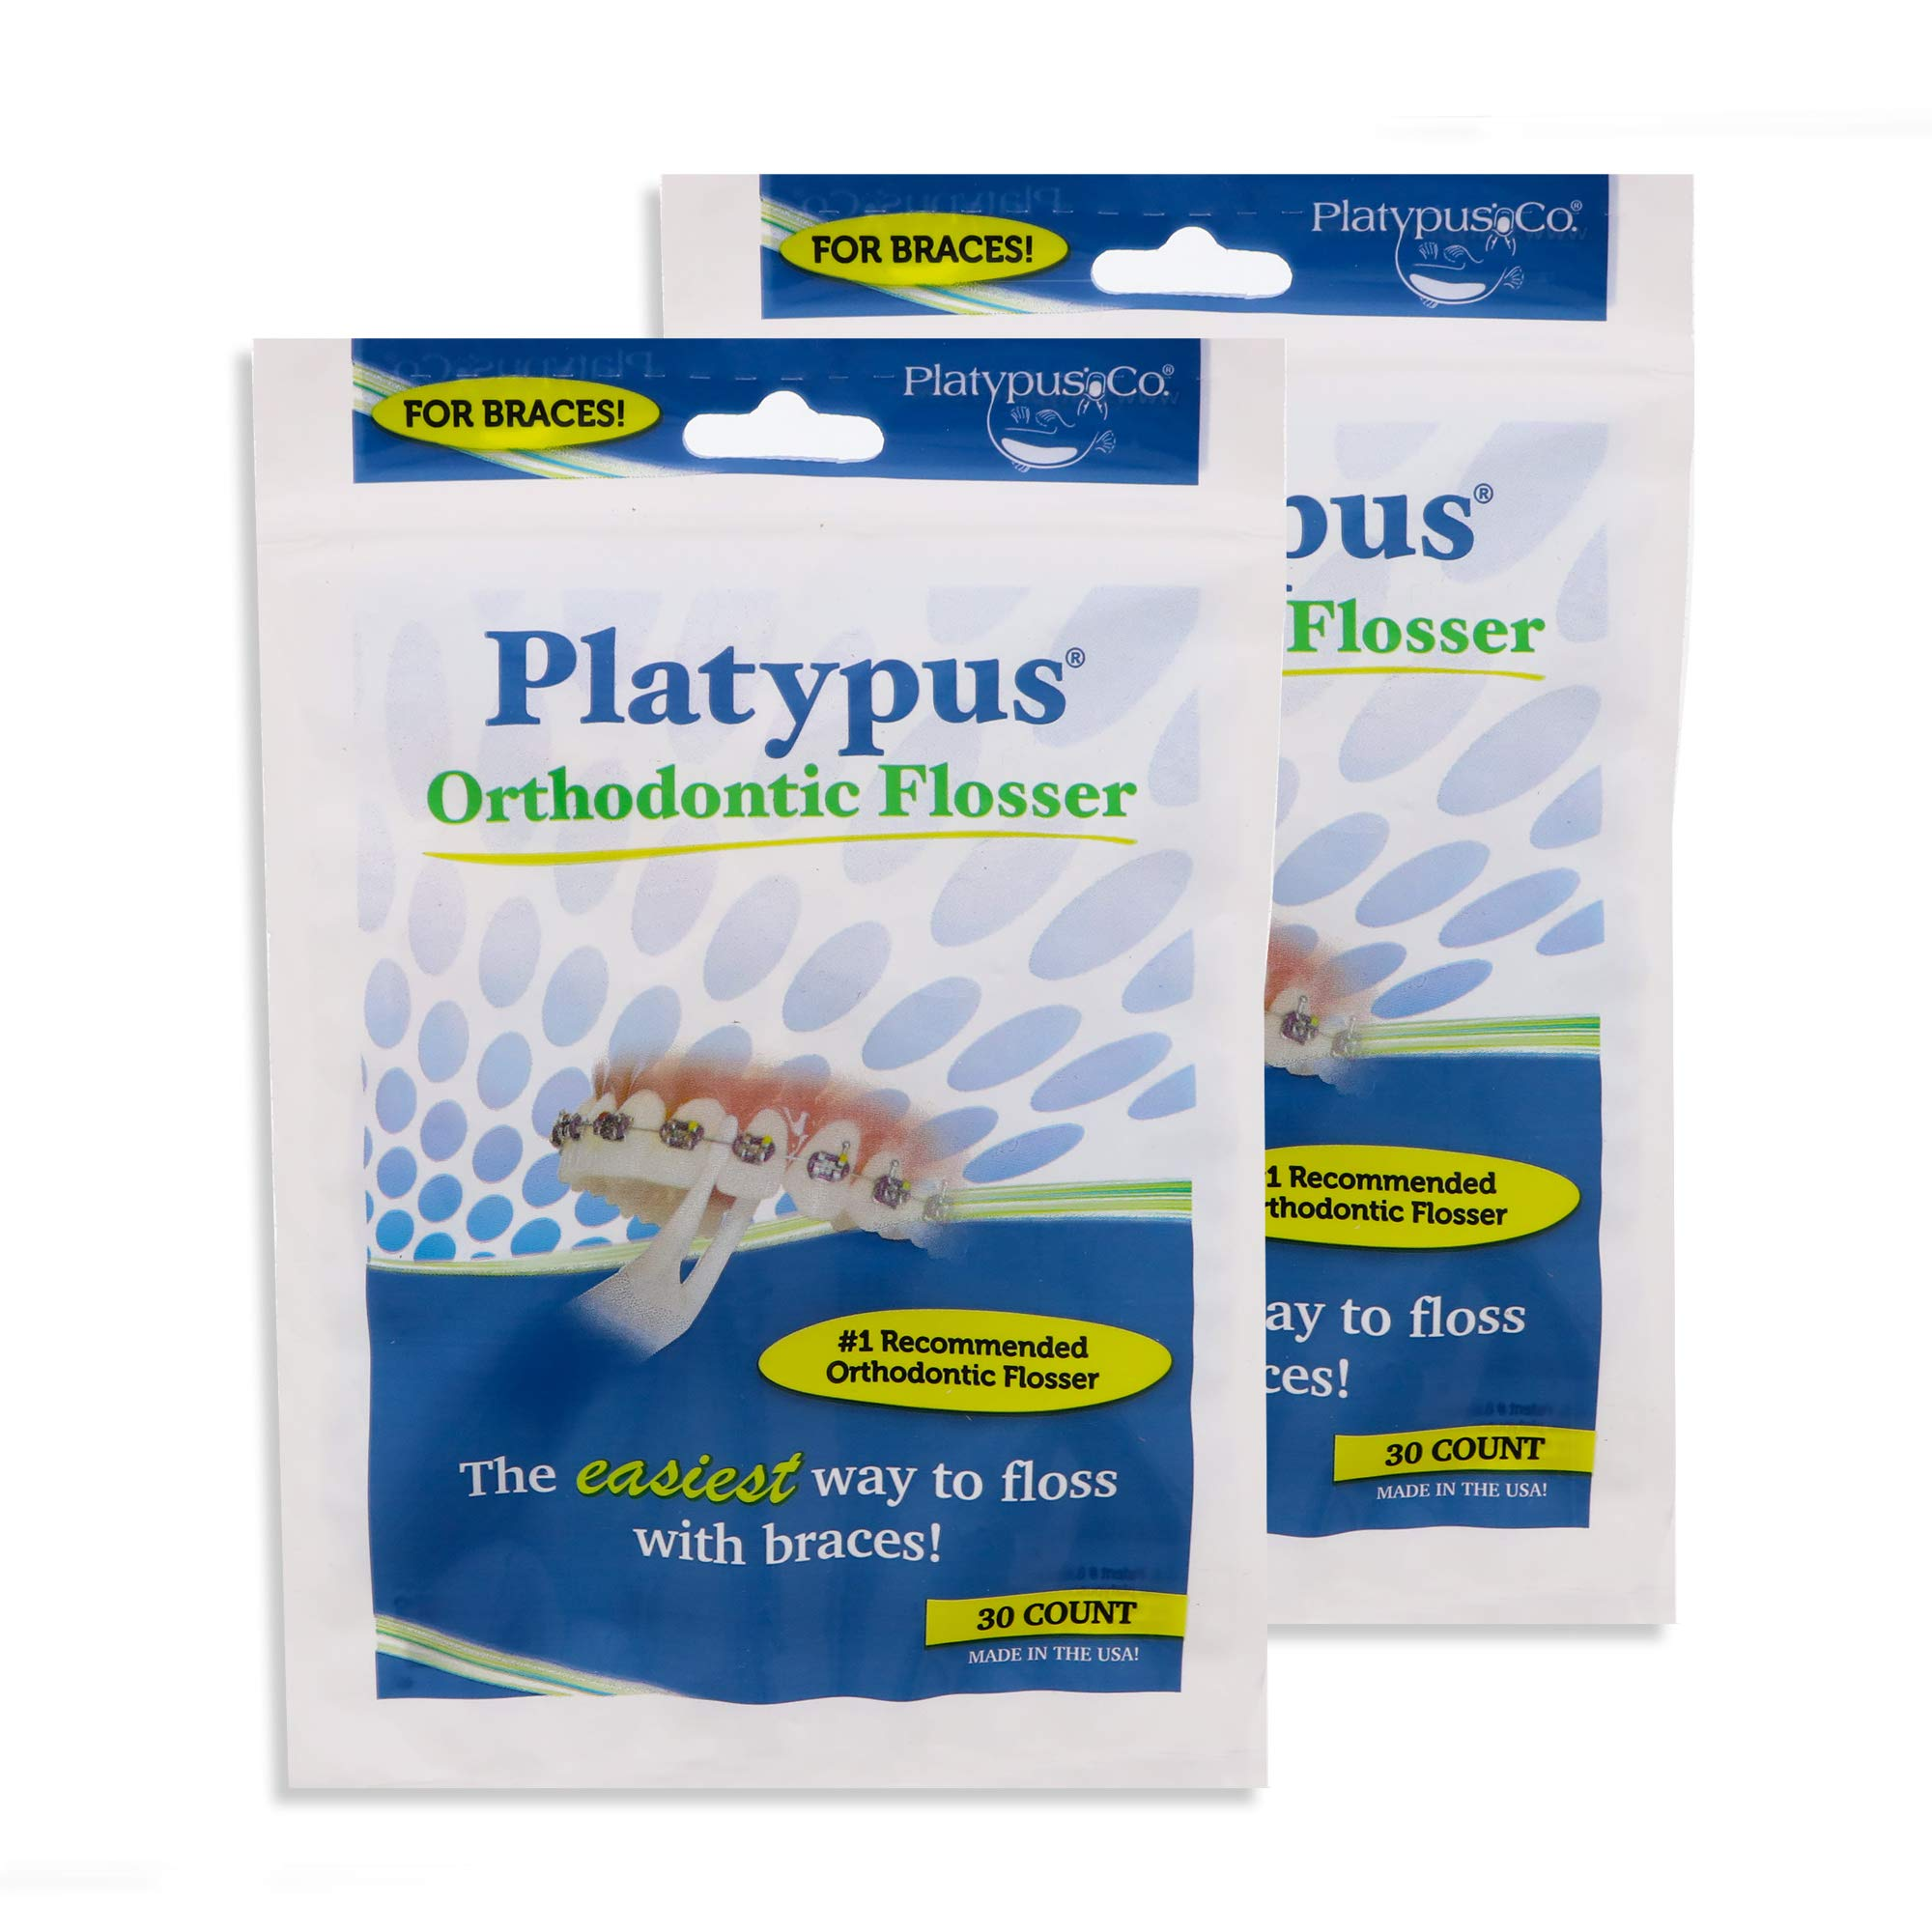 Platypus Ortho Flosser for Braces, 30 count, 2 Pack by Platypus